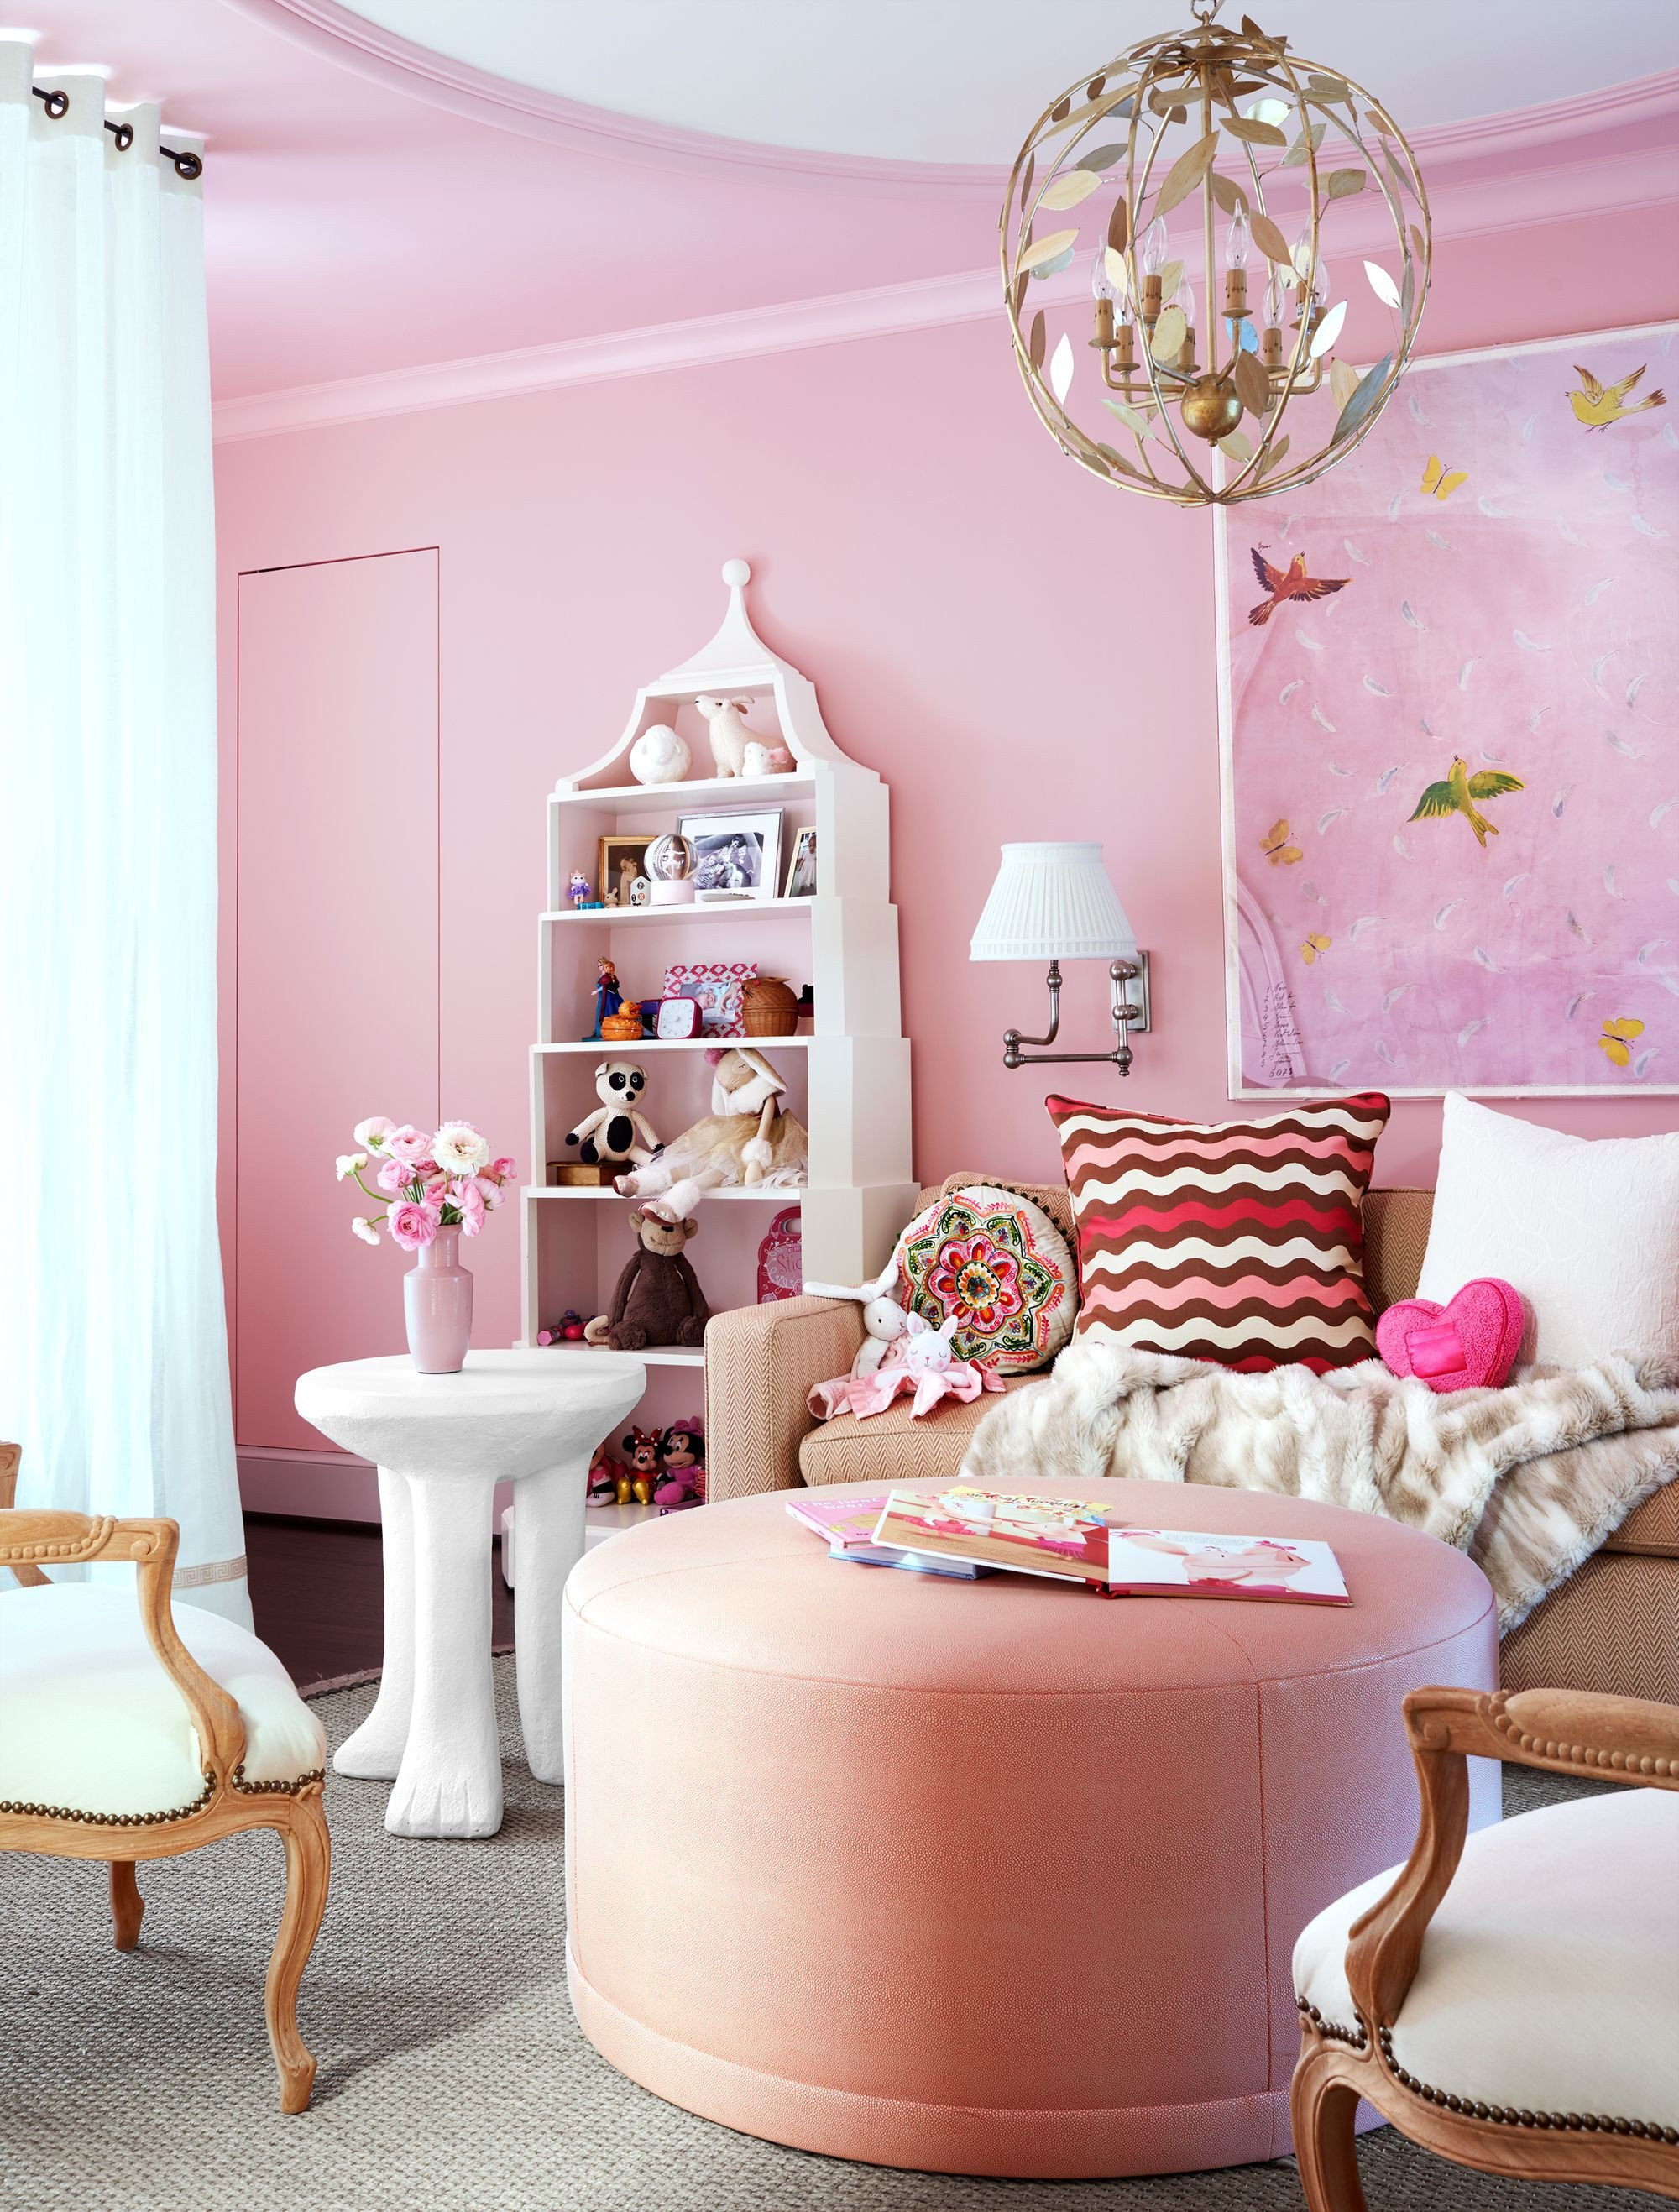 Toddler Girl Bedroom Decor Unique 55 Kids Room Design Ideas Cool Kids Bedroom Decor and Style